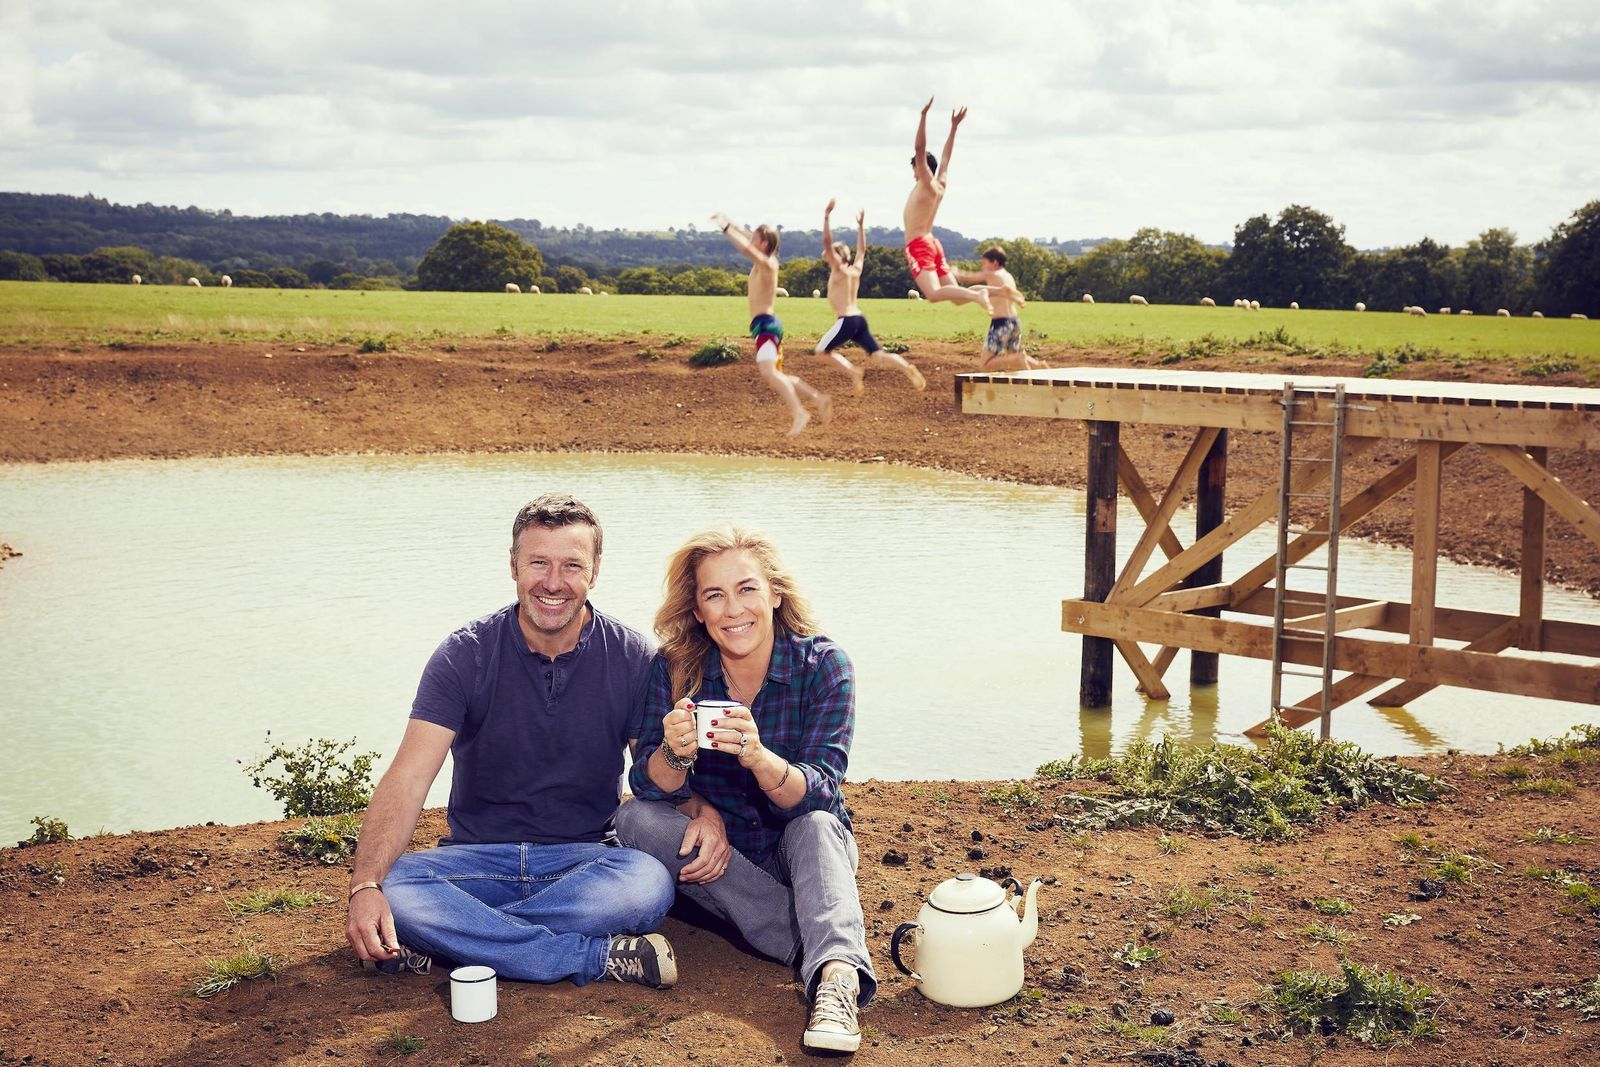 Follow Sarah Beeny S Ambitious Renovation Project With New Channel 4 Series In 2020 People Of Interest News Channels Channel